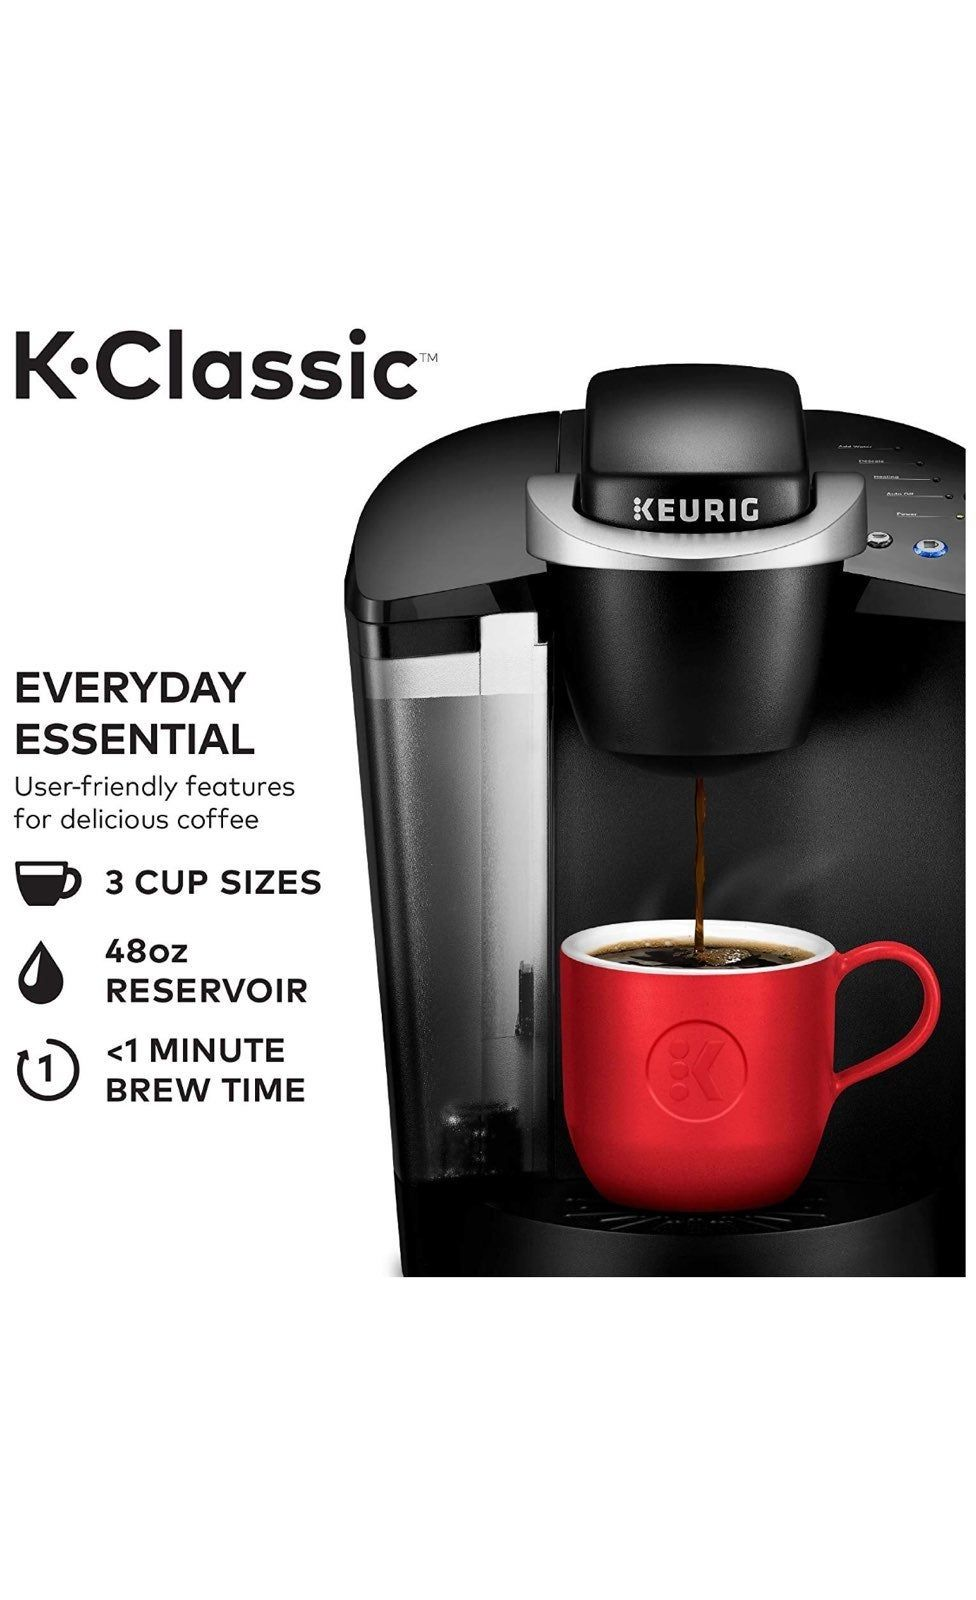 BREWS MULTIPLE KCUP POD SIZES (6, 8, 10 oz.) the most